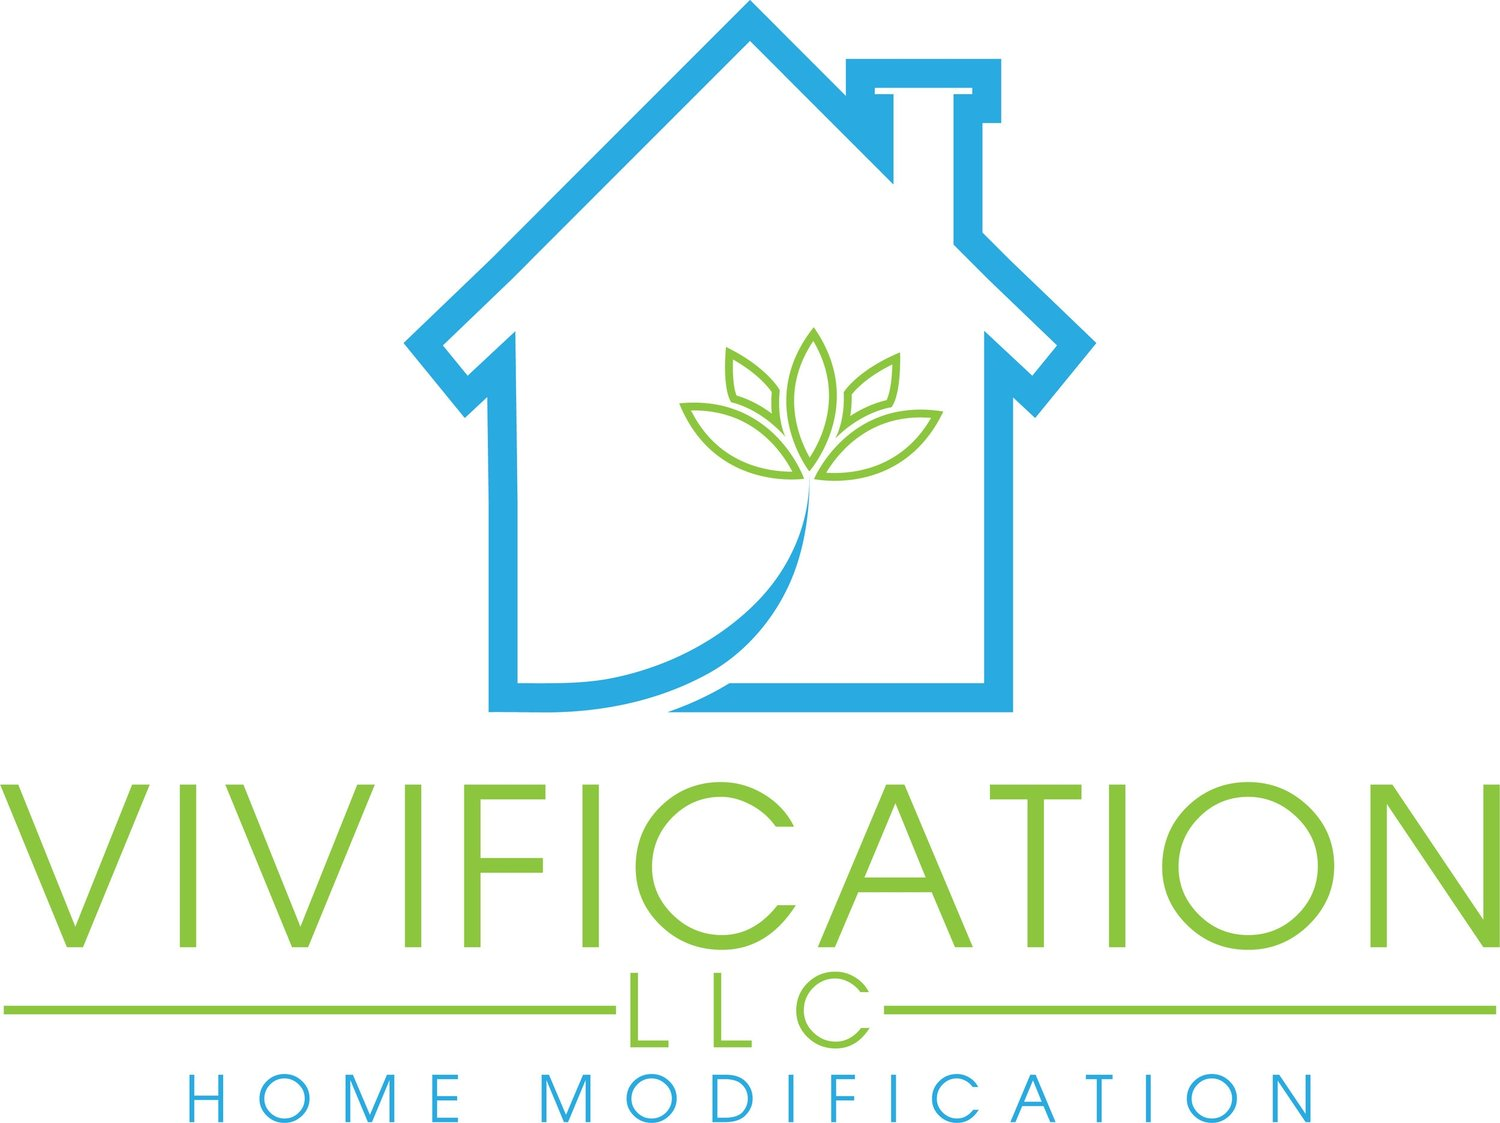 VIVIFICATION LLC